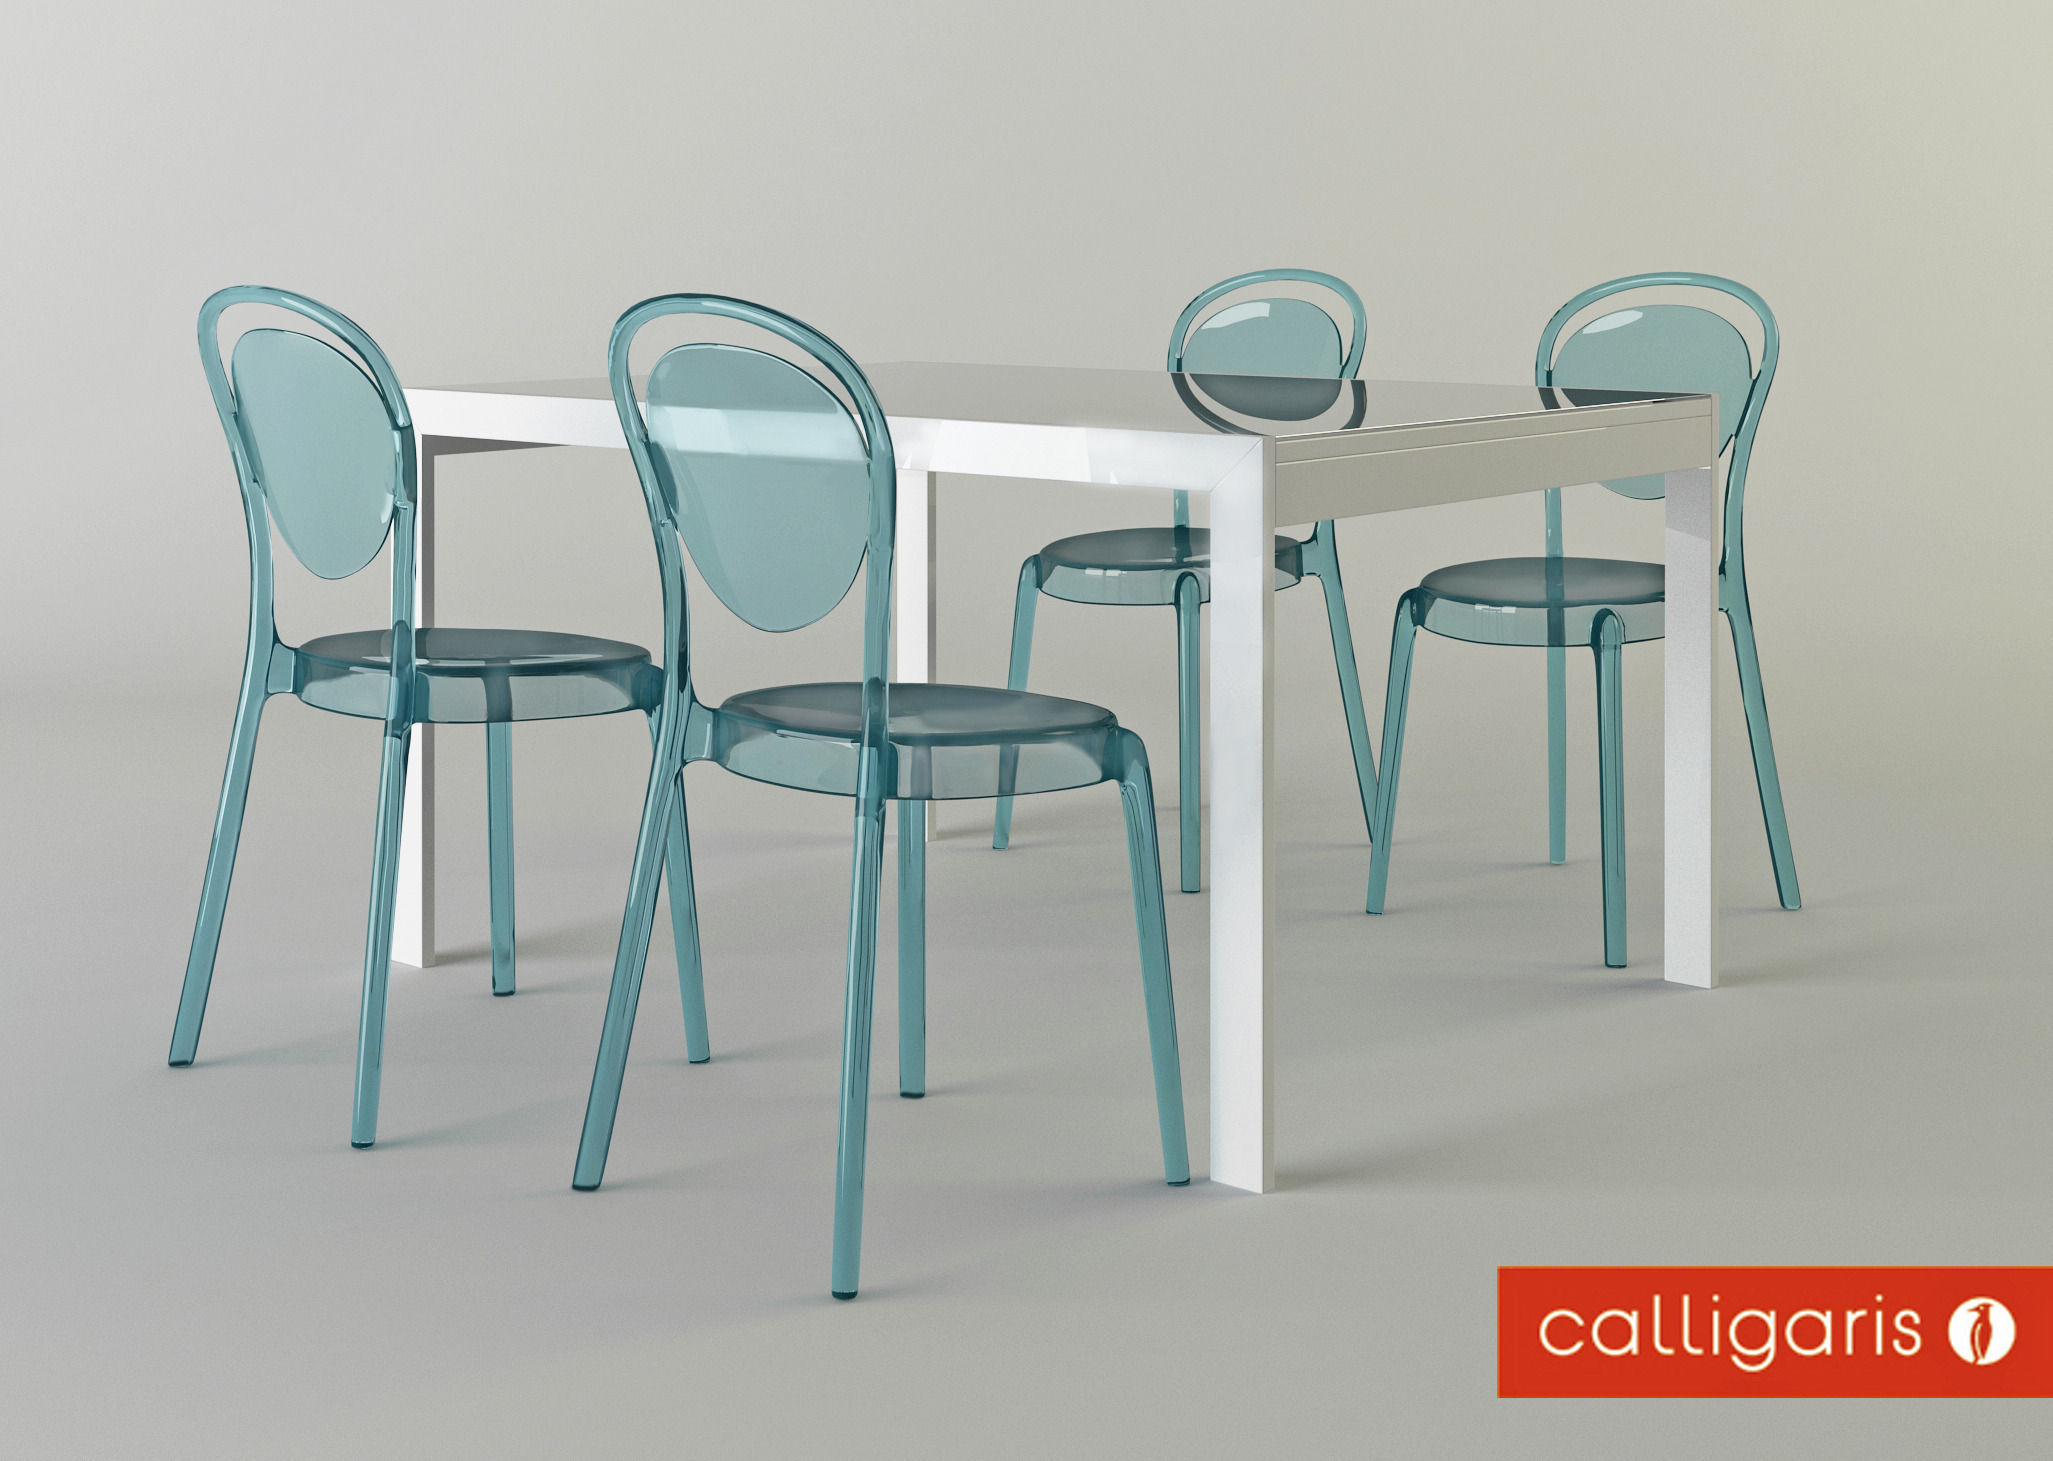 furniture set calligaris chair parisien and table key 3d model max